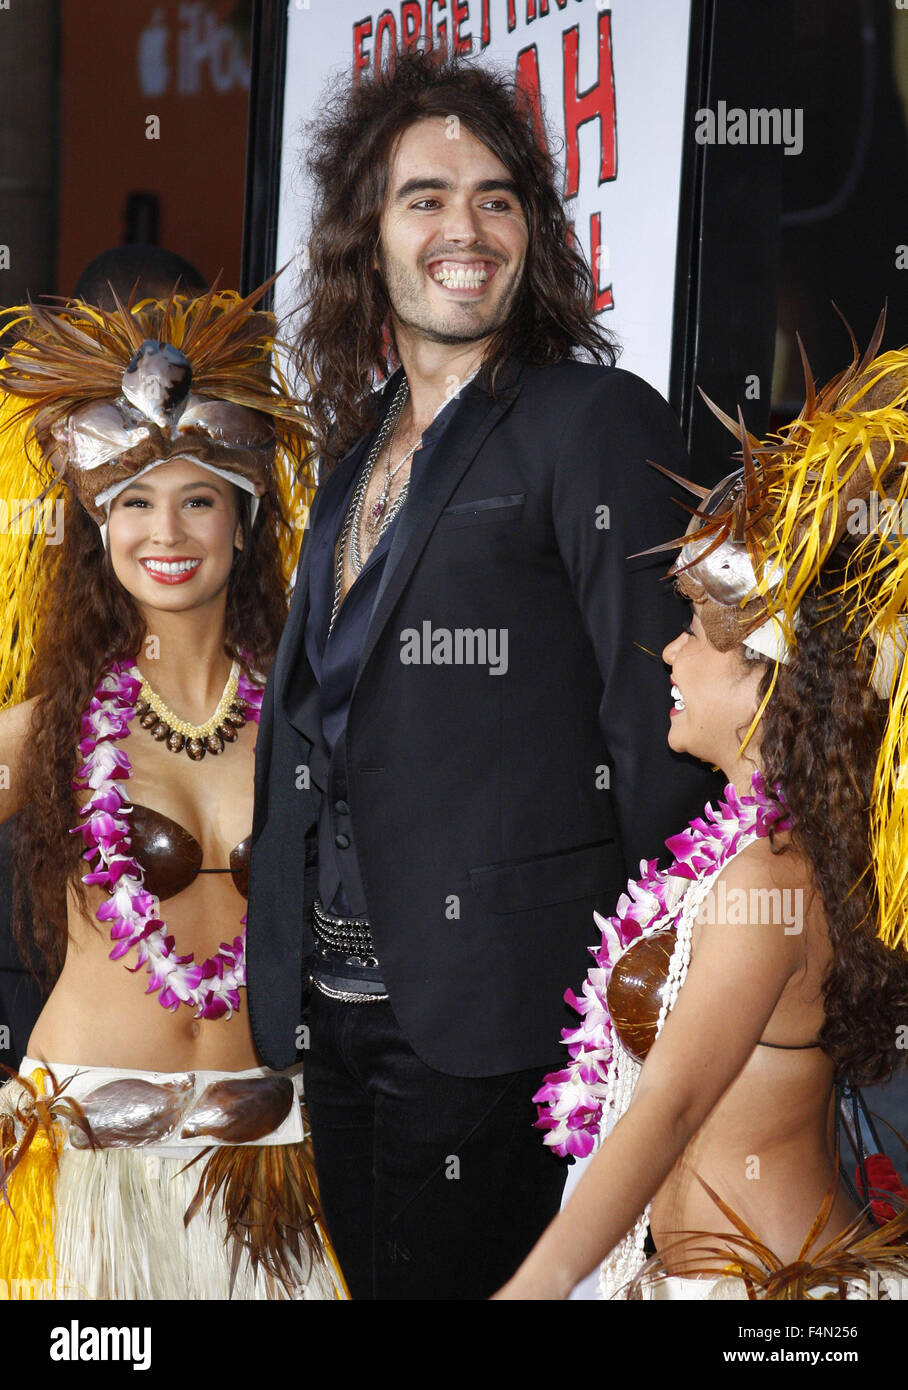 10/04/2008 - Hollywood - Russell Brand arrives to the World Premiere of 'Forgetting Sarah Marshall' held - Stock Image